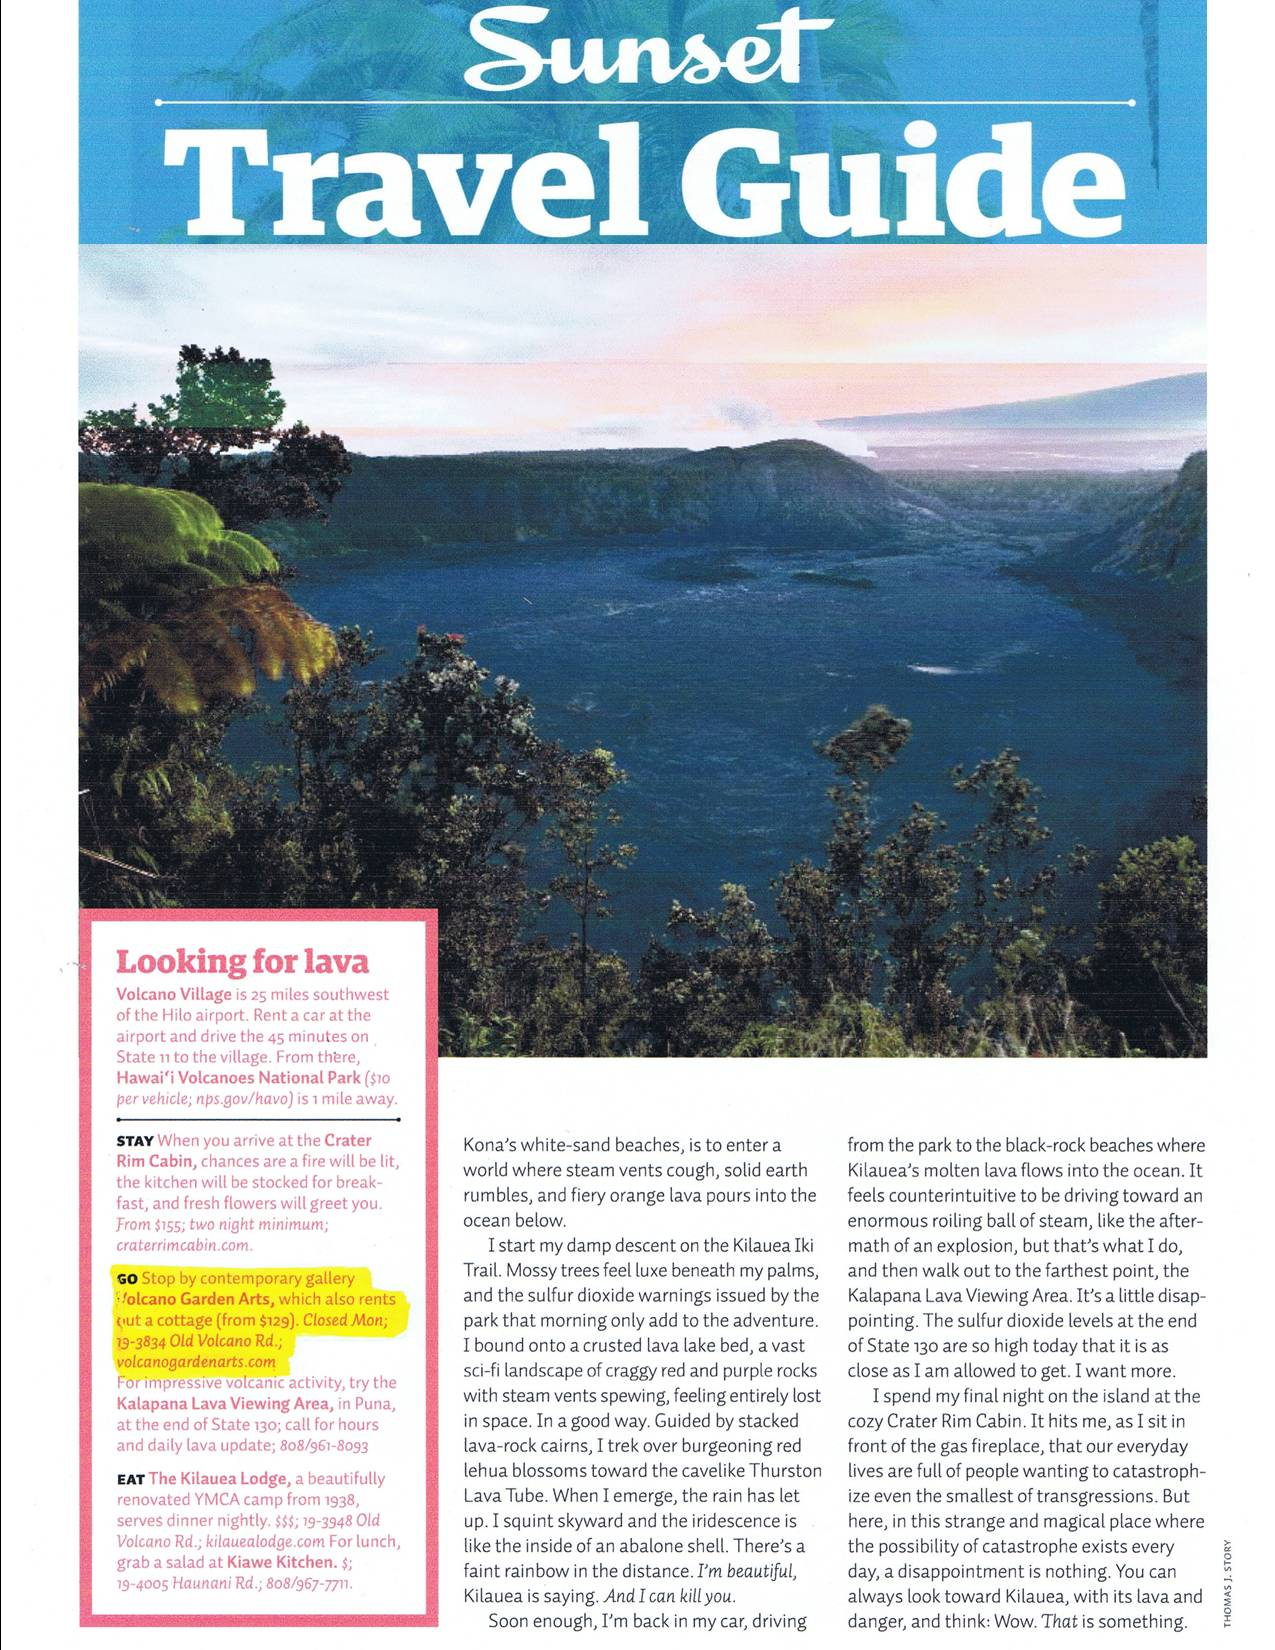 Sunset Travel Guide Article